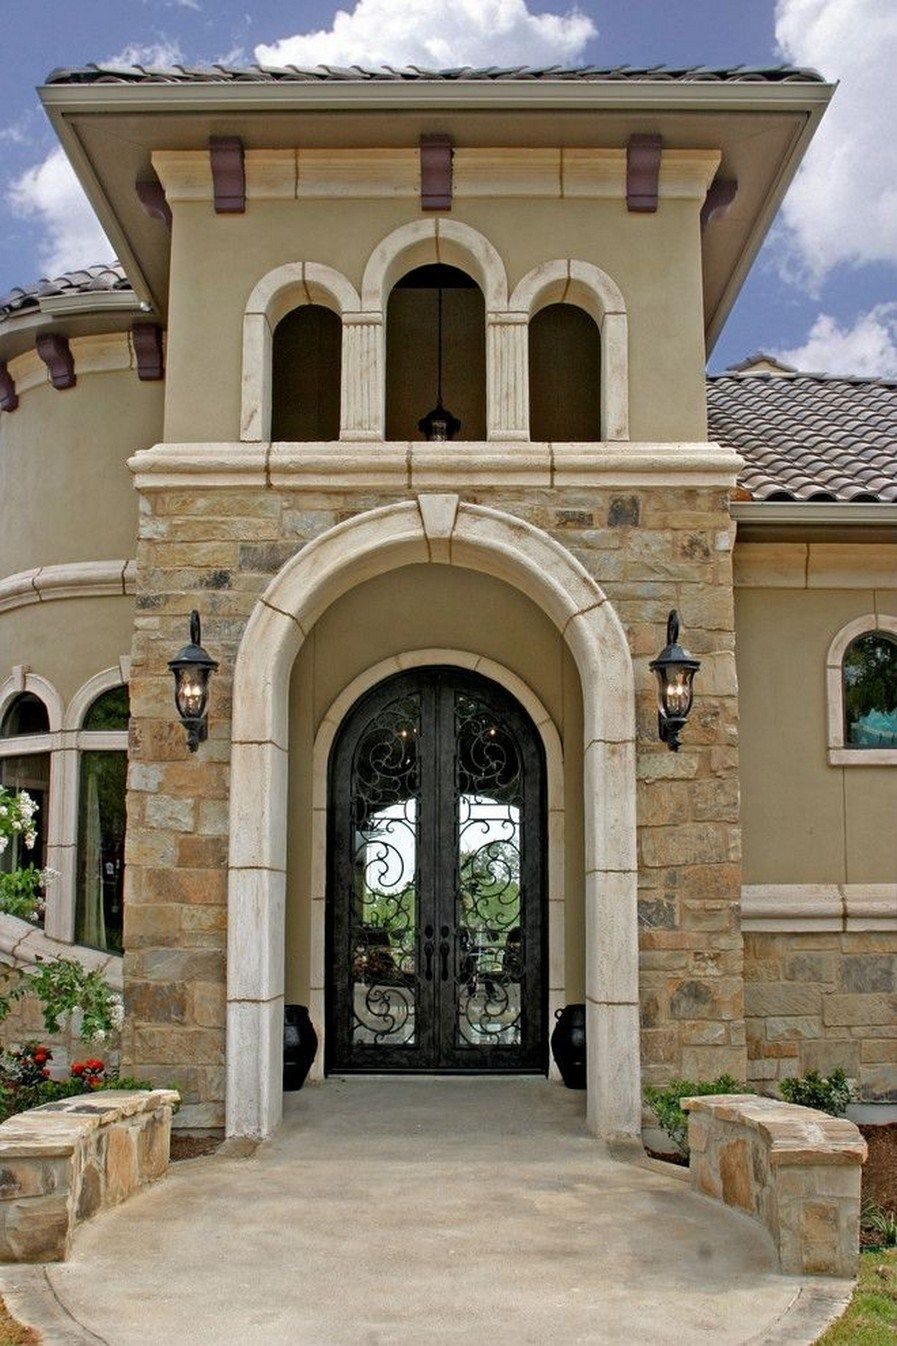 Rutenberg Gainesville Luxury Designer Home Stone Work: 51 Most Beautiful Mediterranean Designs Ideas In This World 18 (With Images)